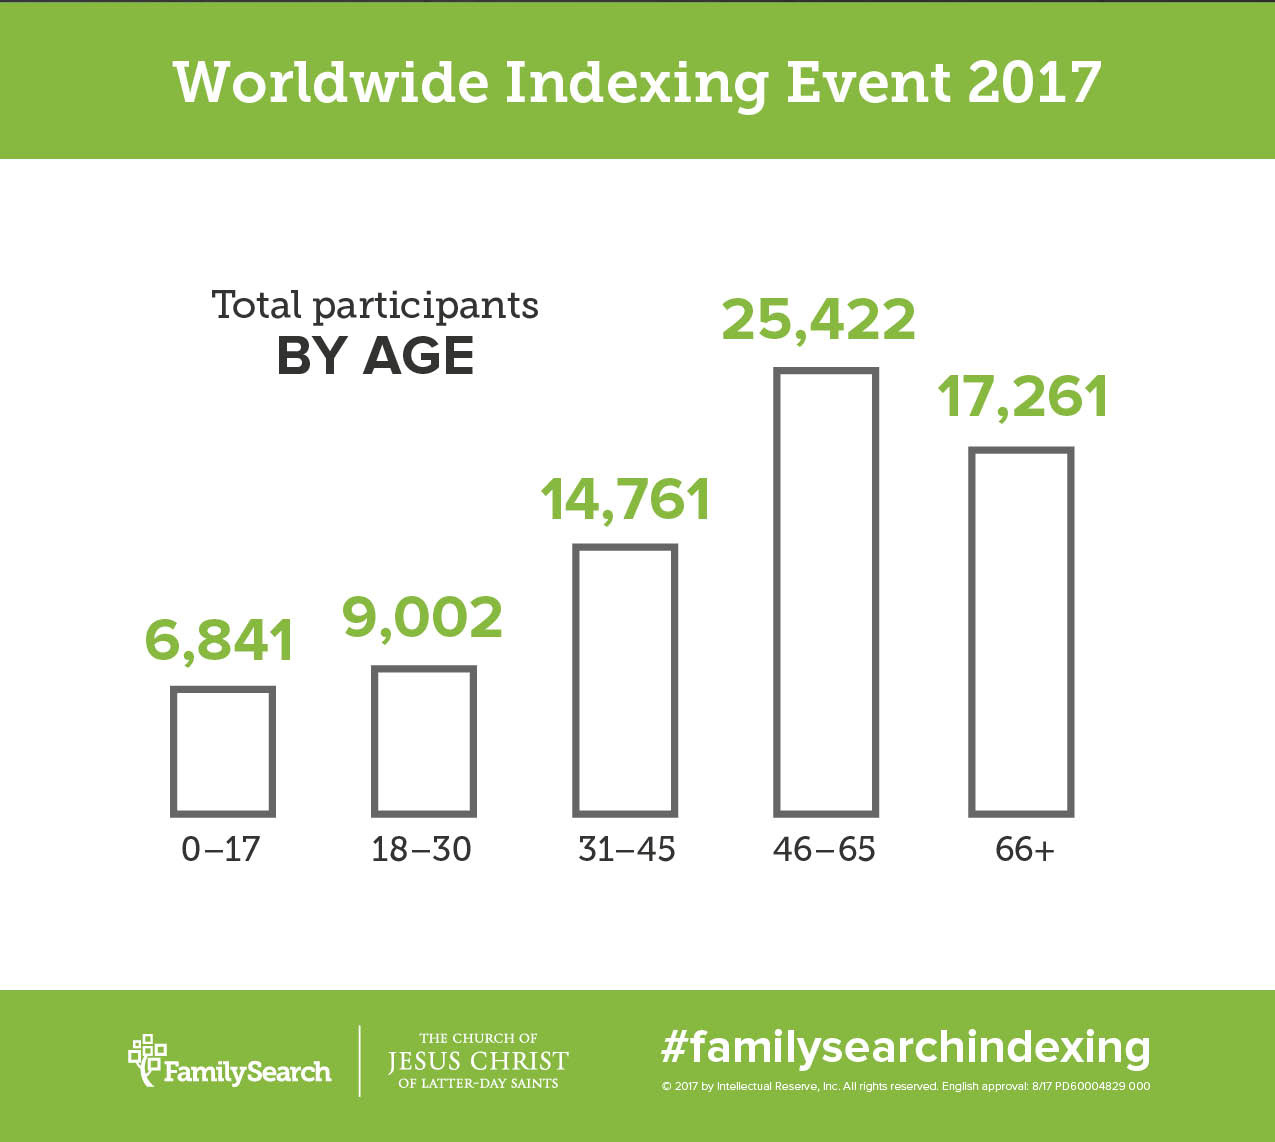 Over 7 million new records have been indexed on FamilySearch!